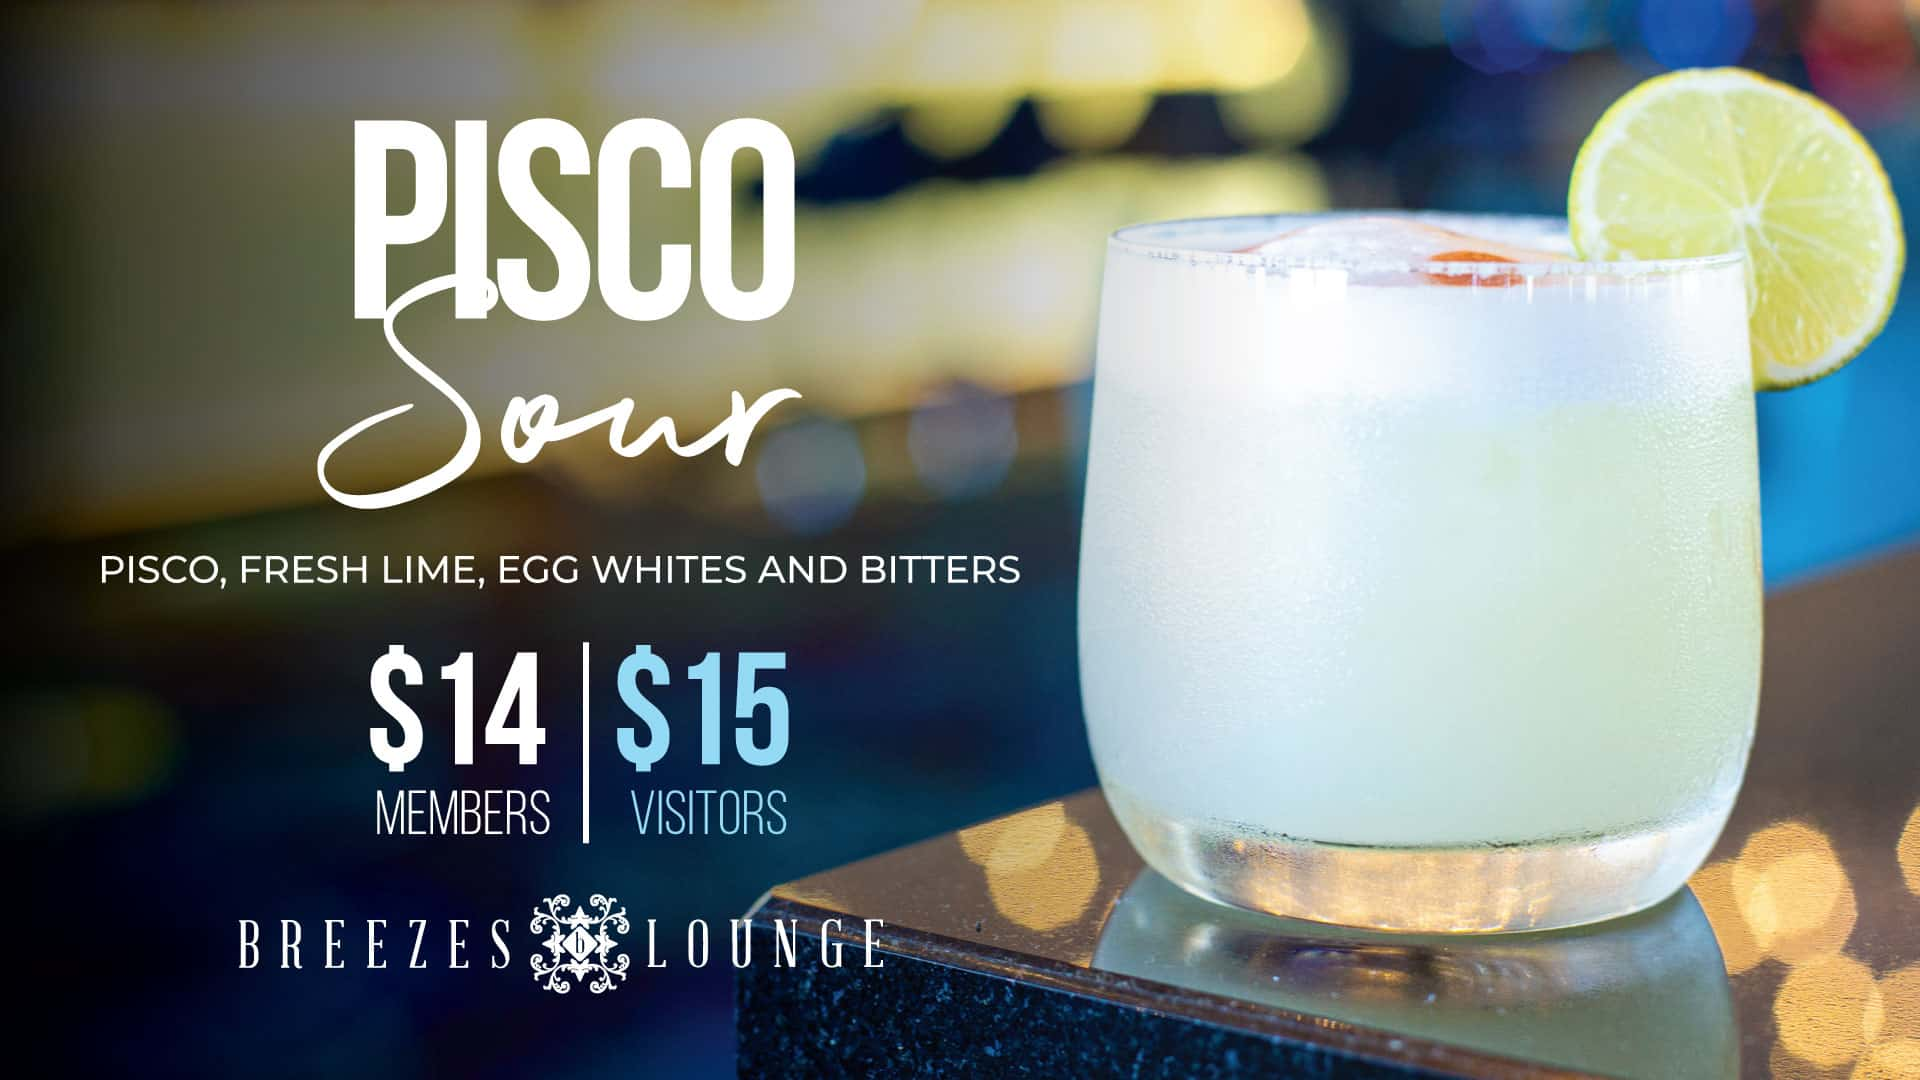 Pisco Sour Twin Towns Clubs Resorts